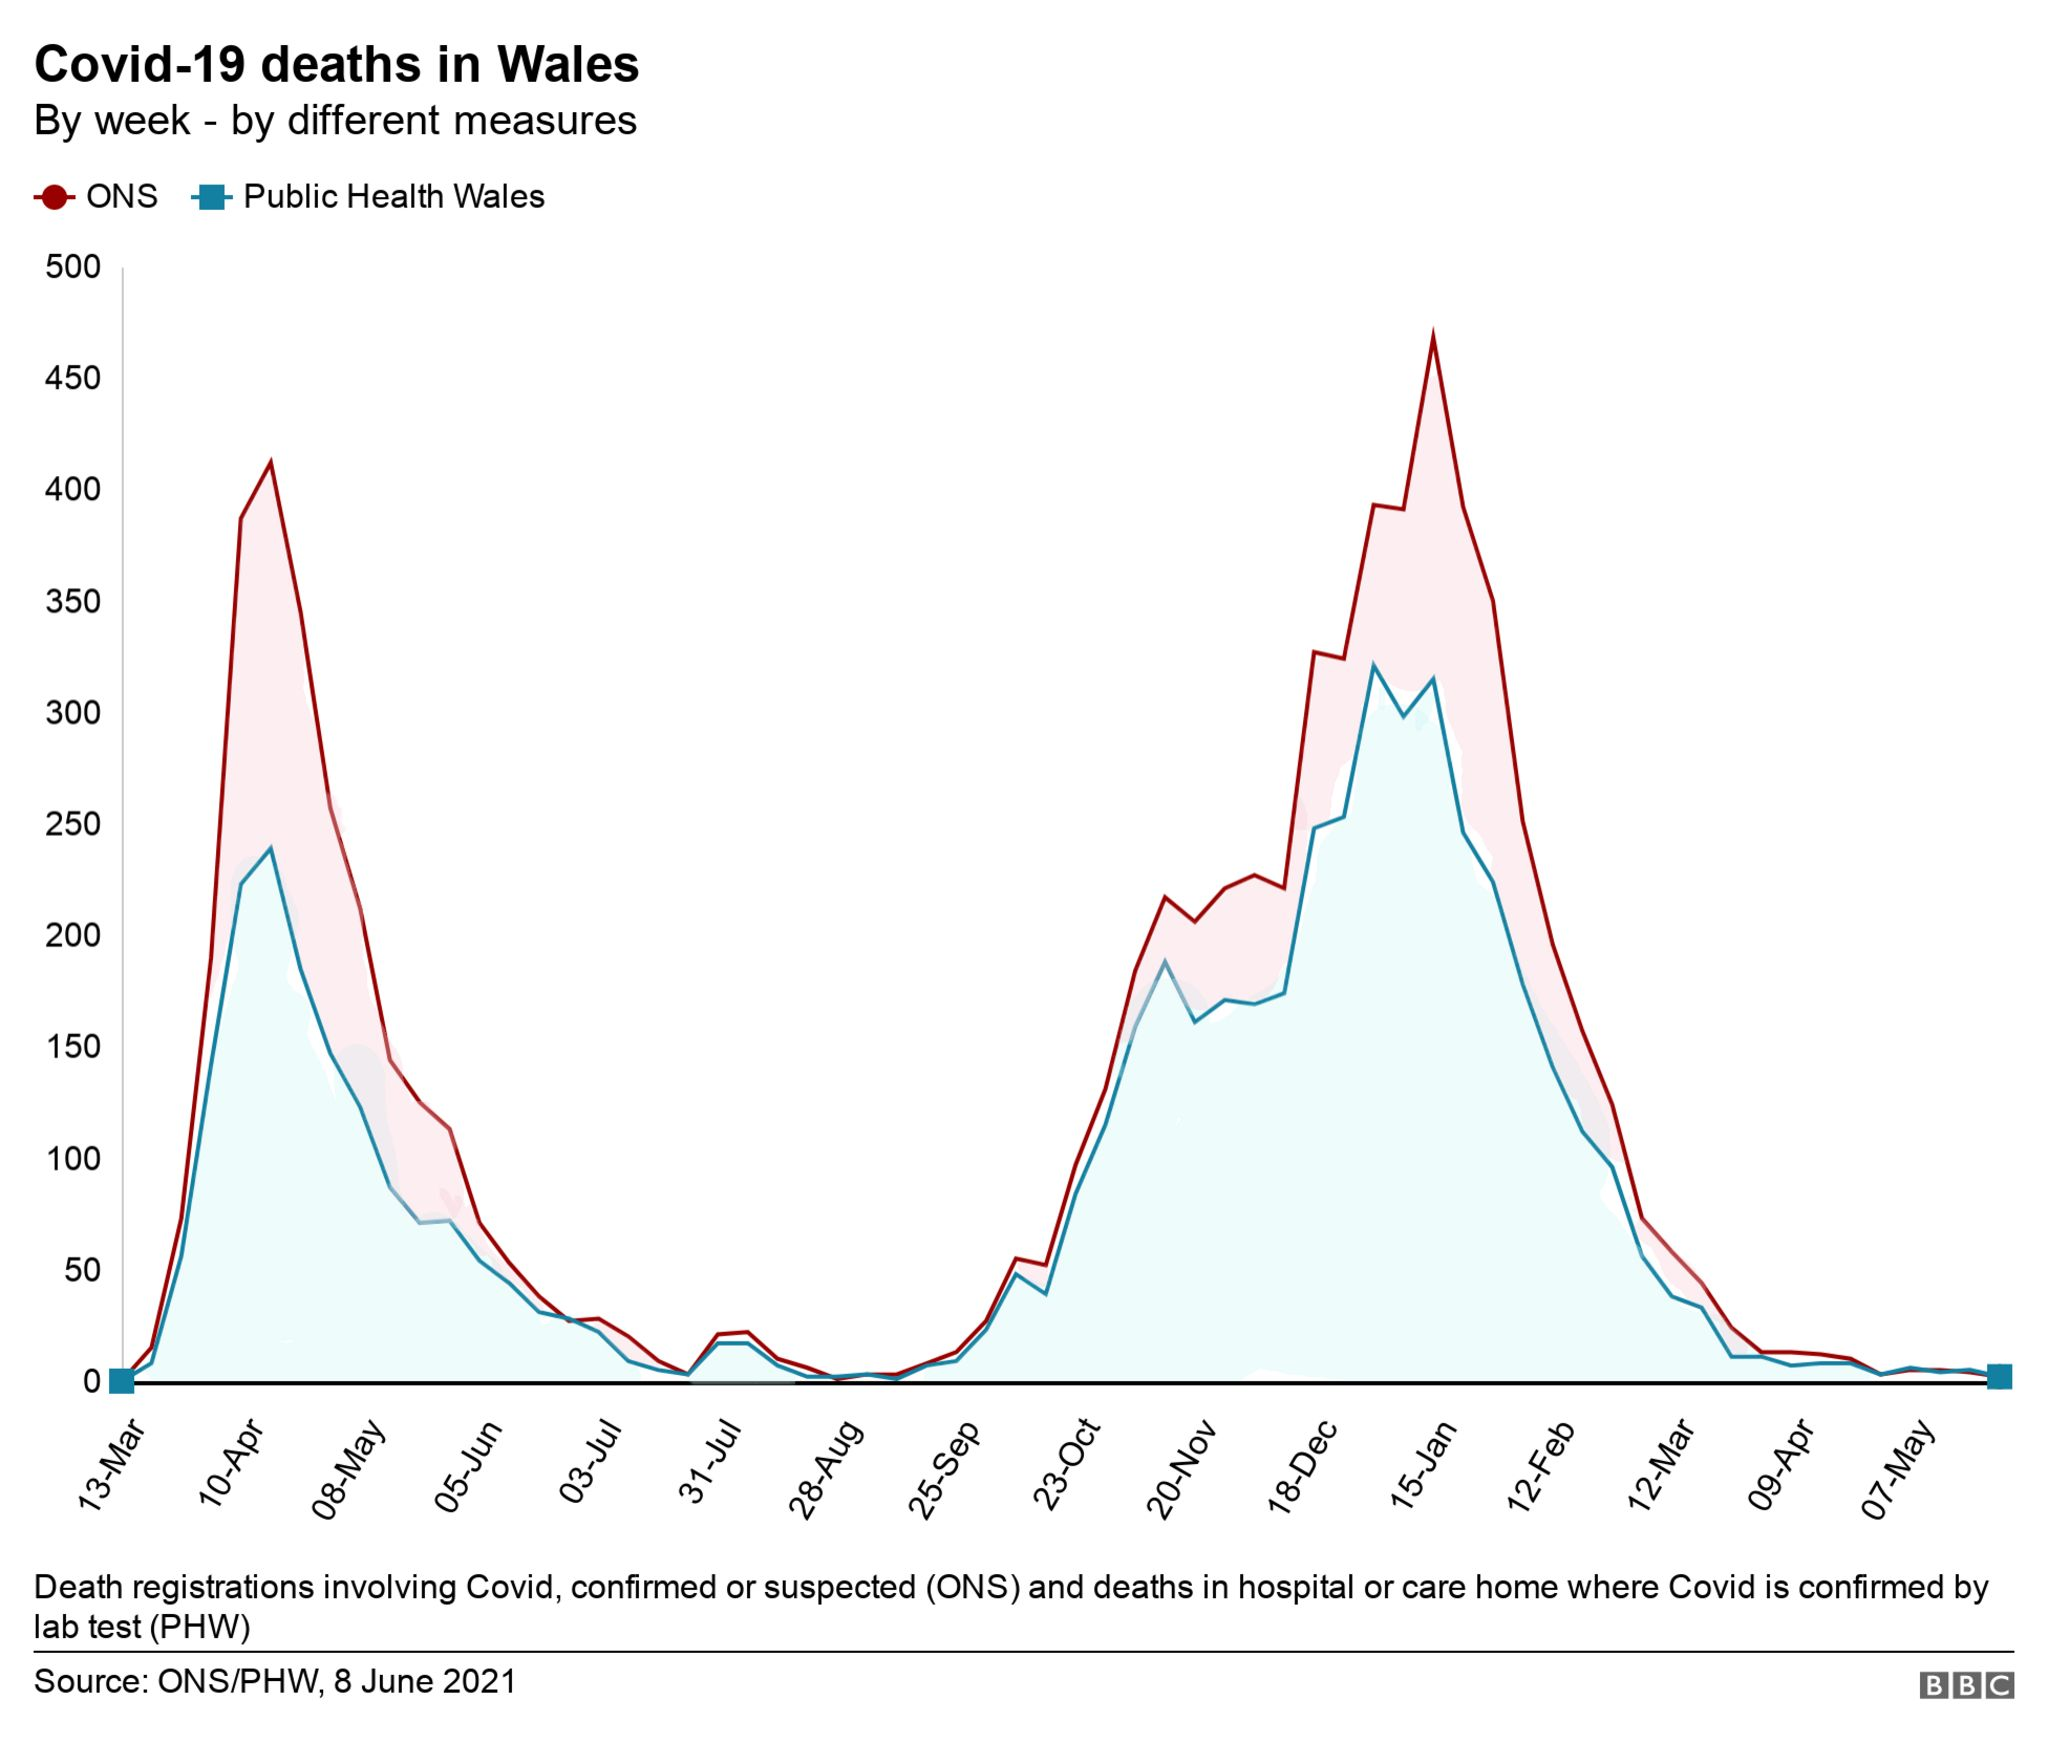 Deaths by different measures - 8 June